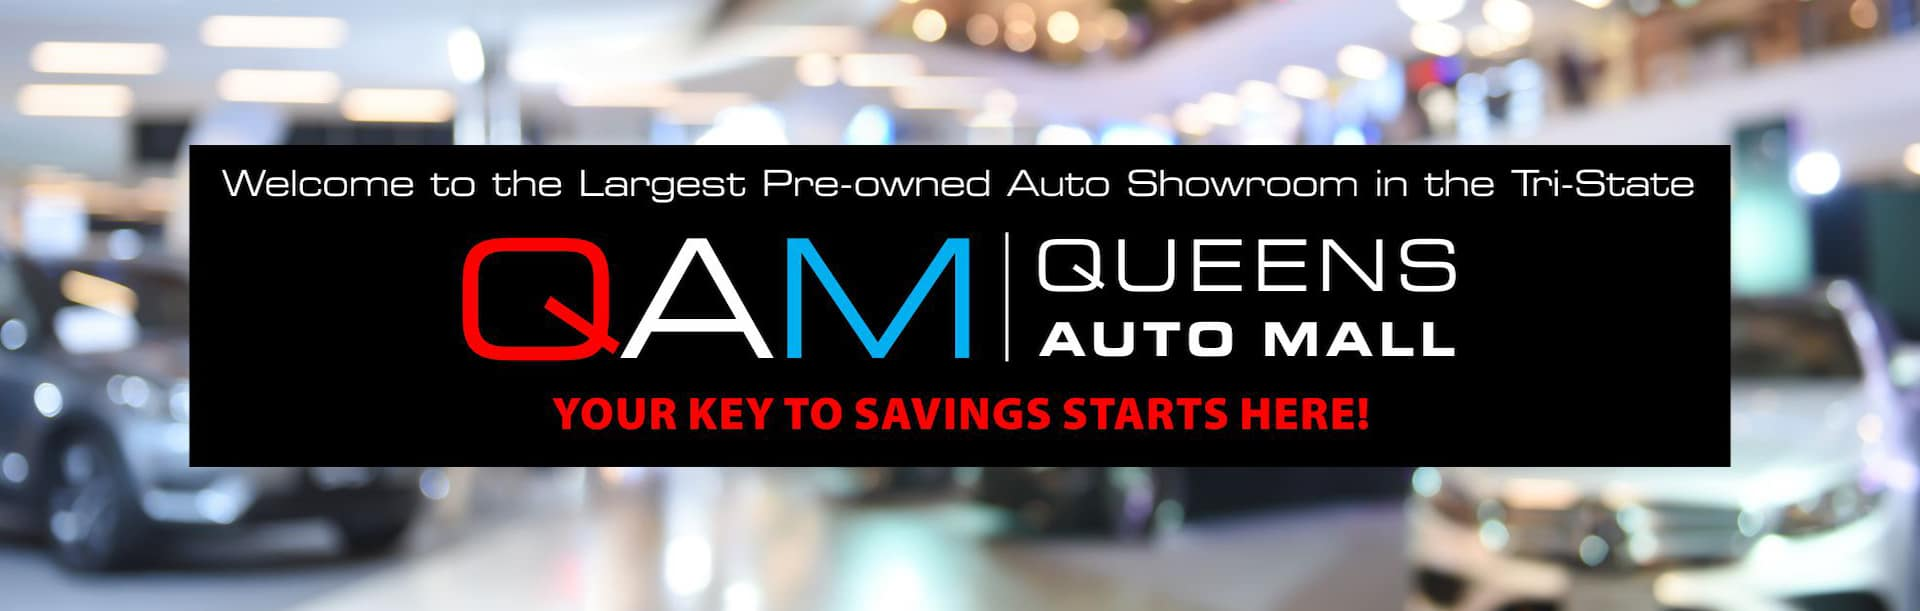 Used Car Auctions Near Me >> Queens Auto Mall Used Car Dealership And Auction House